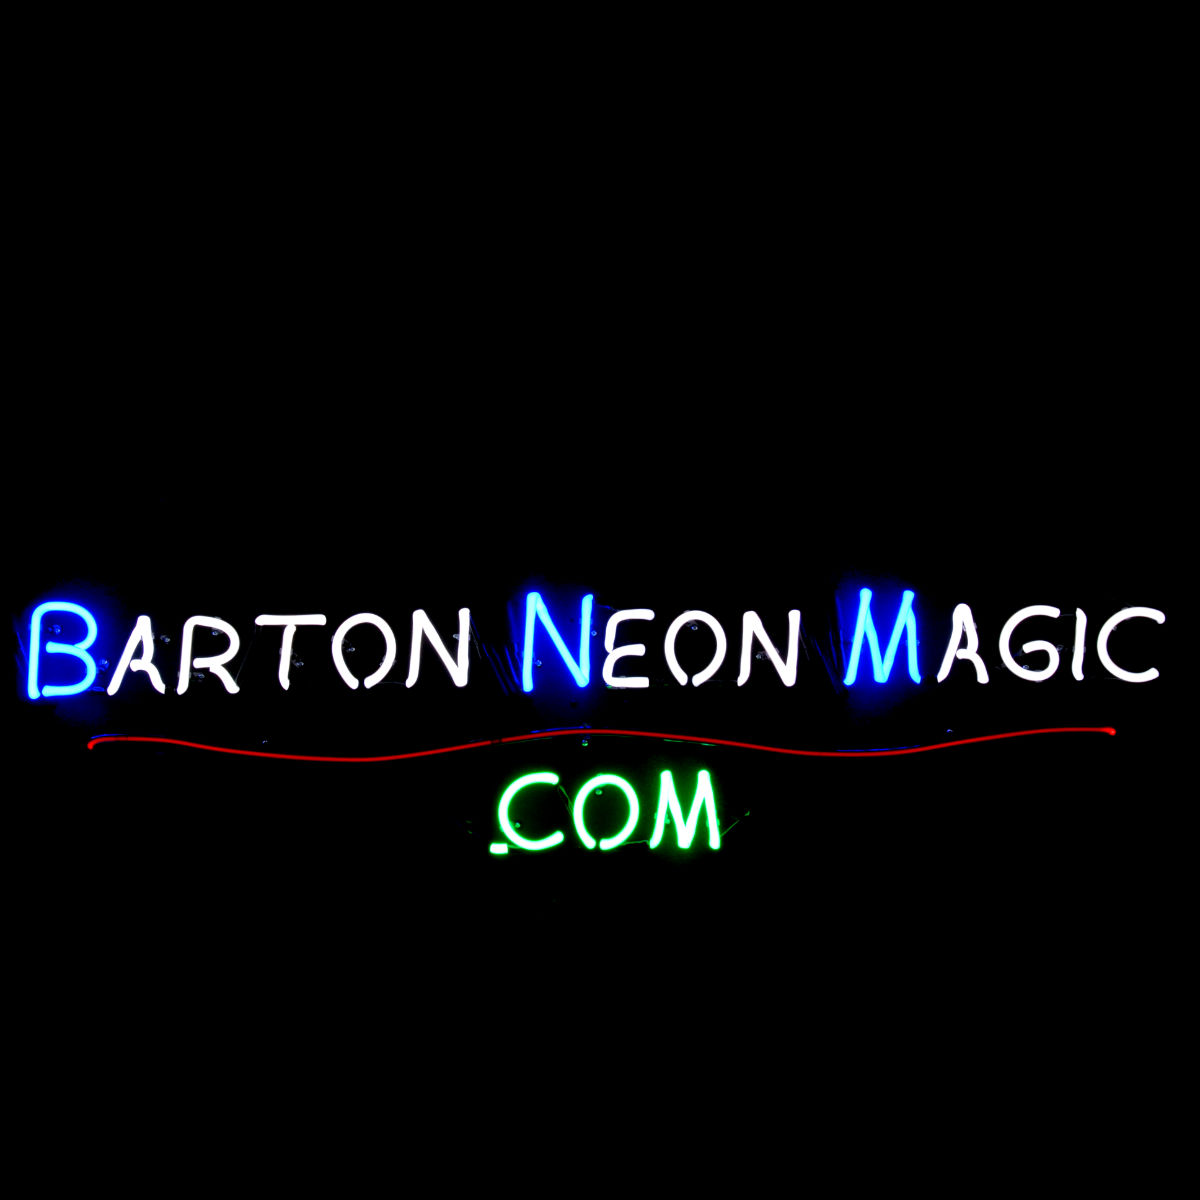 BartonNeonMagic.com - Finest Quality Custom Neon by John Barton - Internationally Famous American Neon Glass Artist